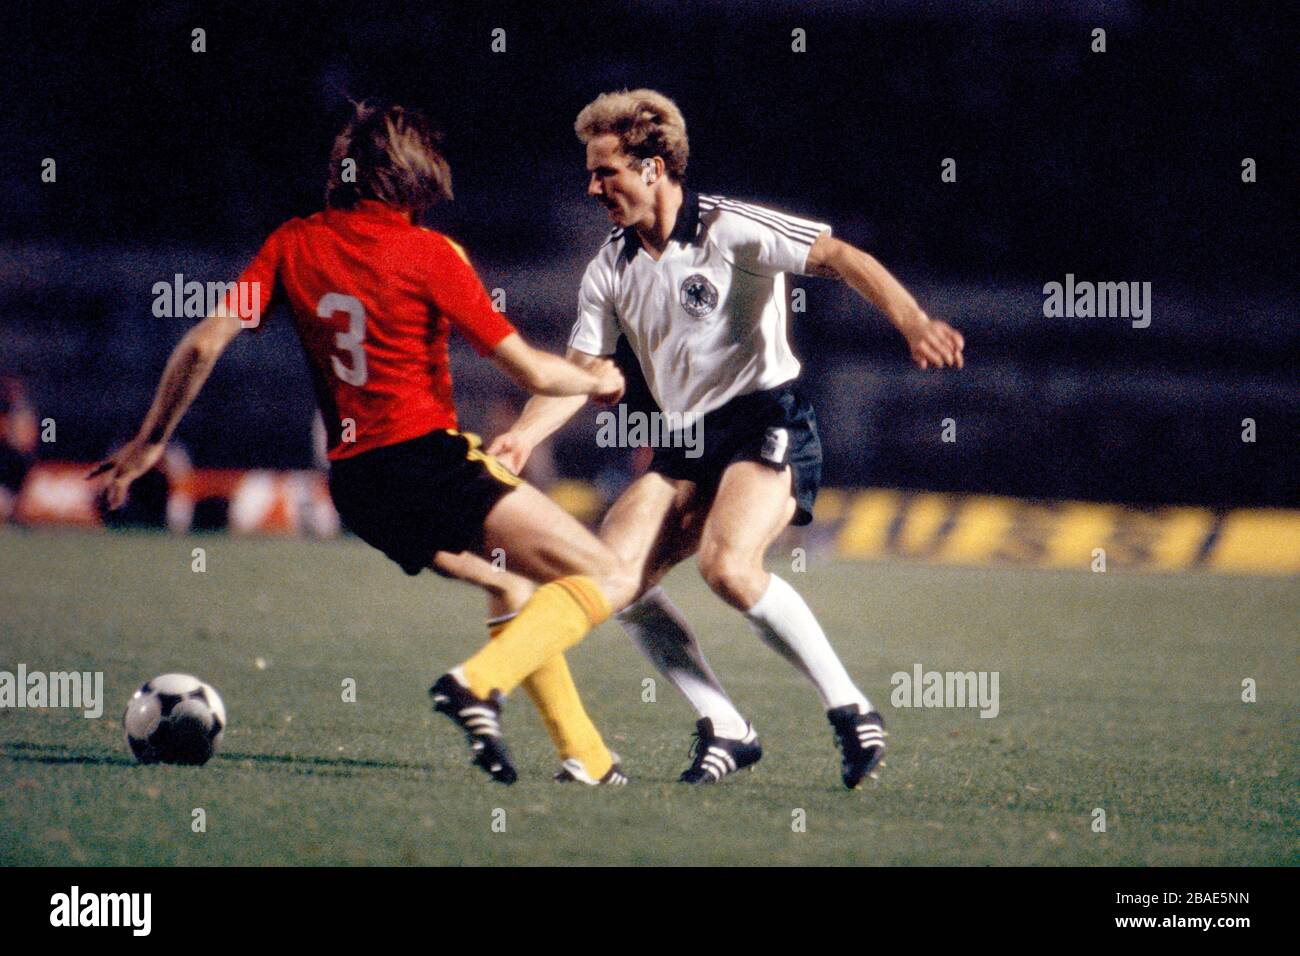 West Germany's Karl-Heinz Rummenigge (r) takes on Belgium's Luc Millecamps (l) Stock Photo